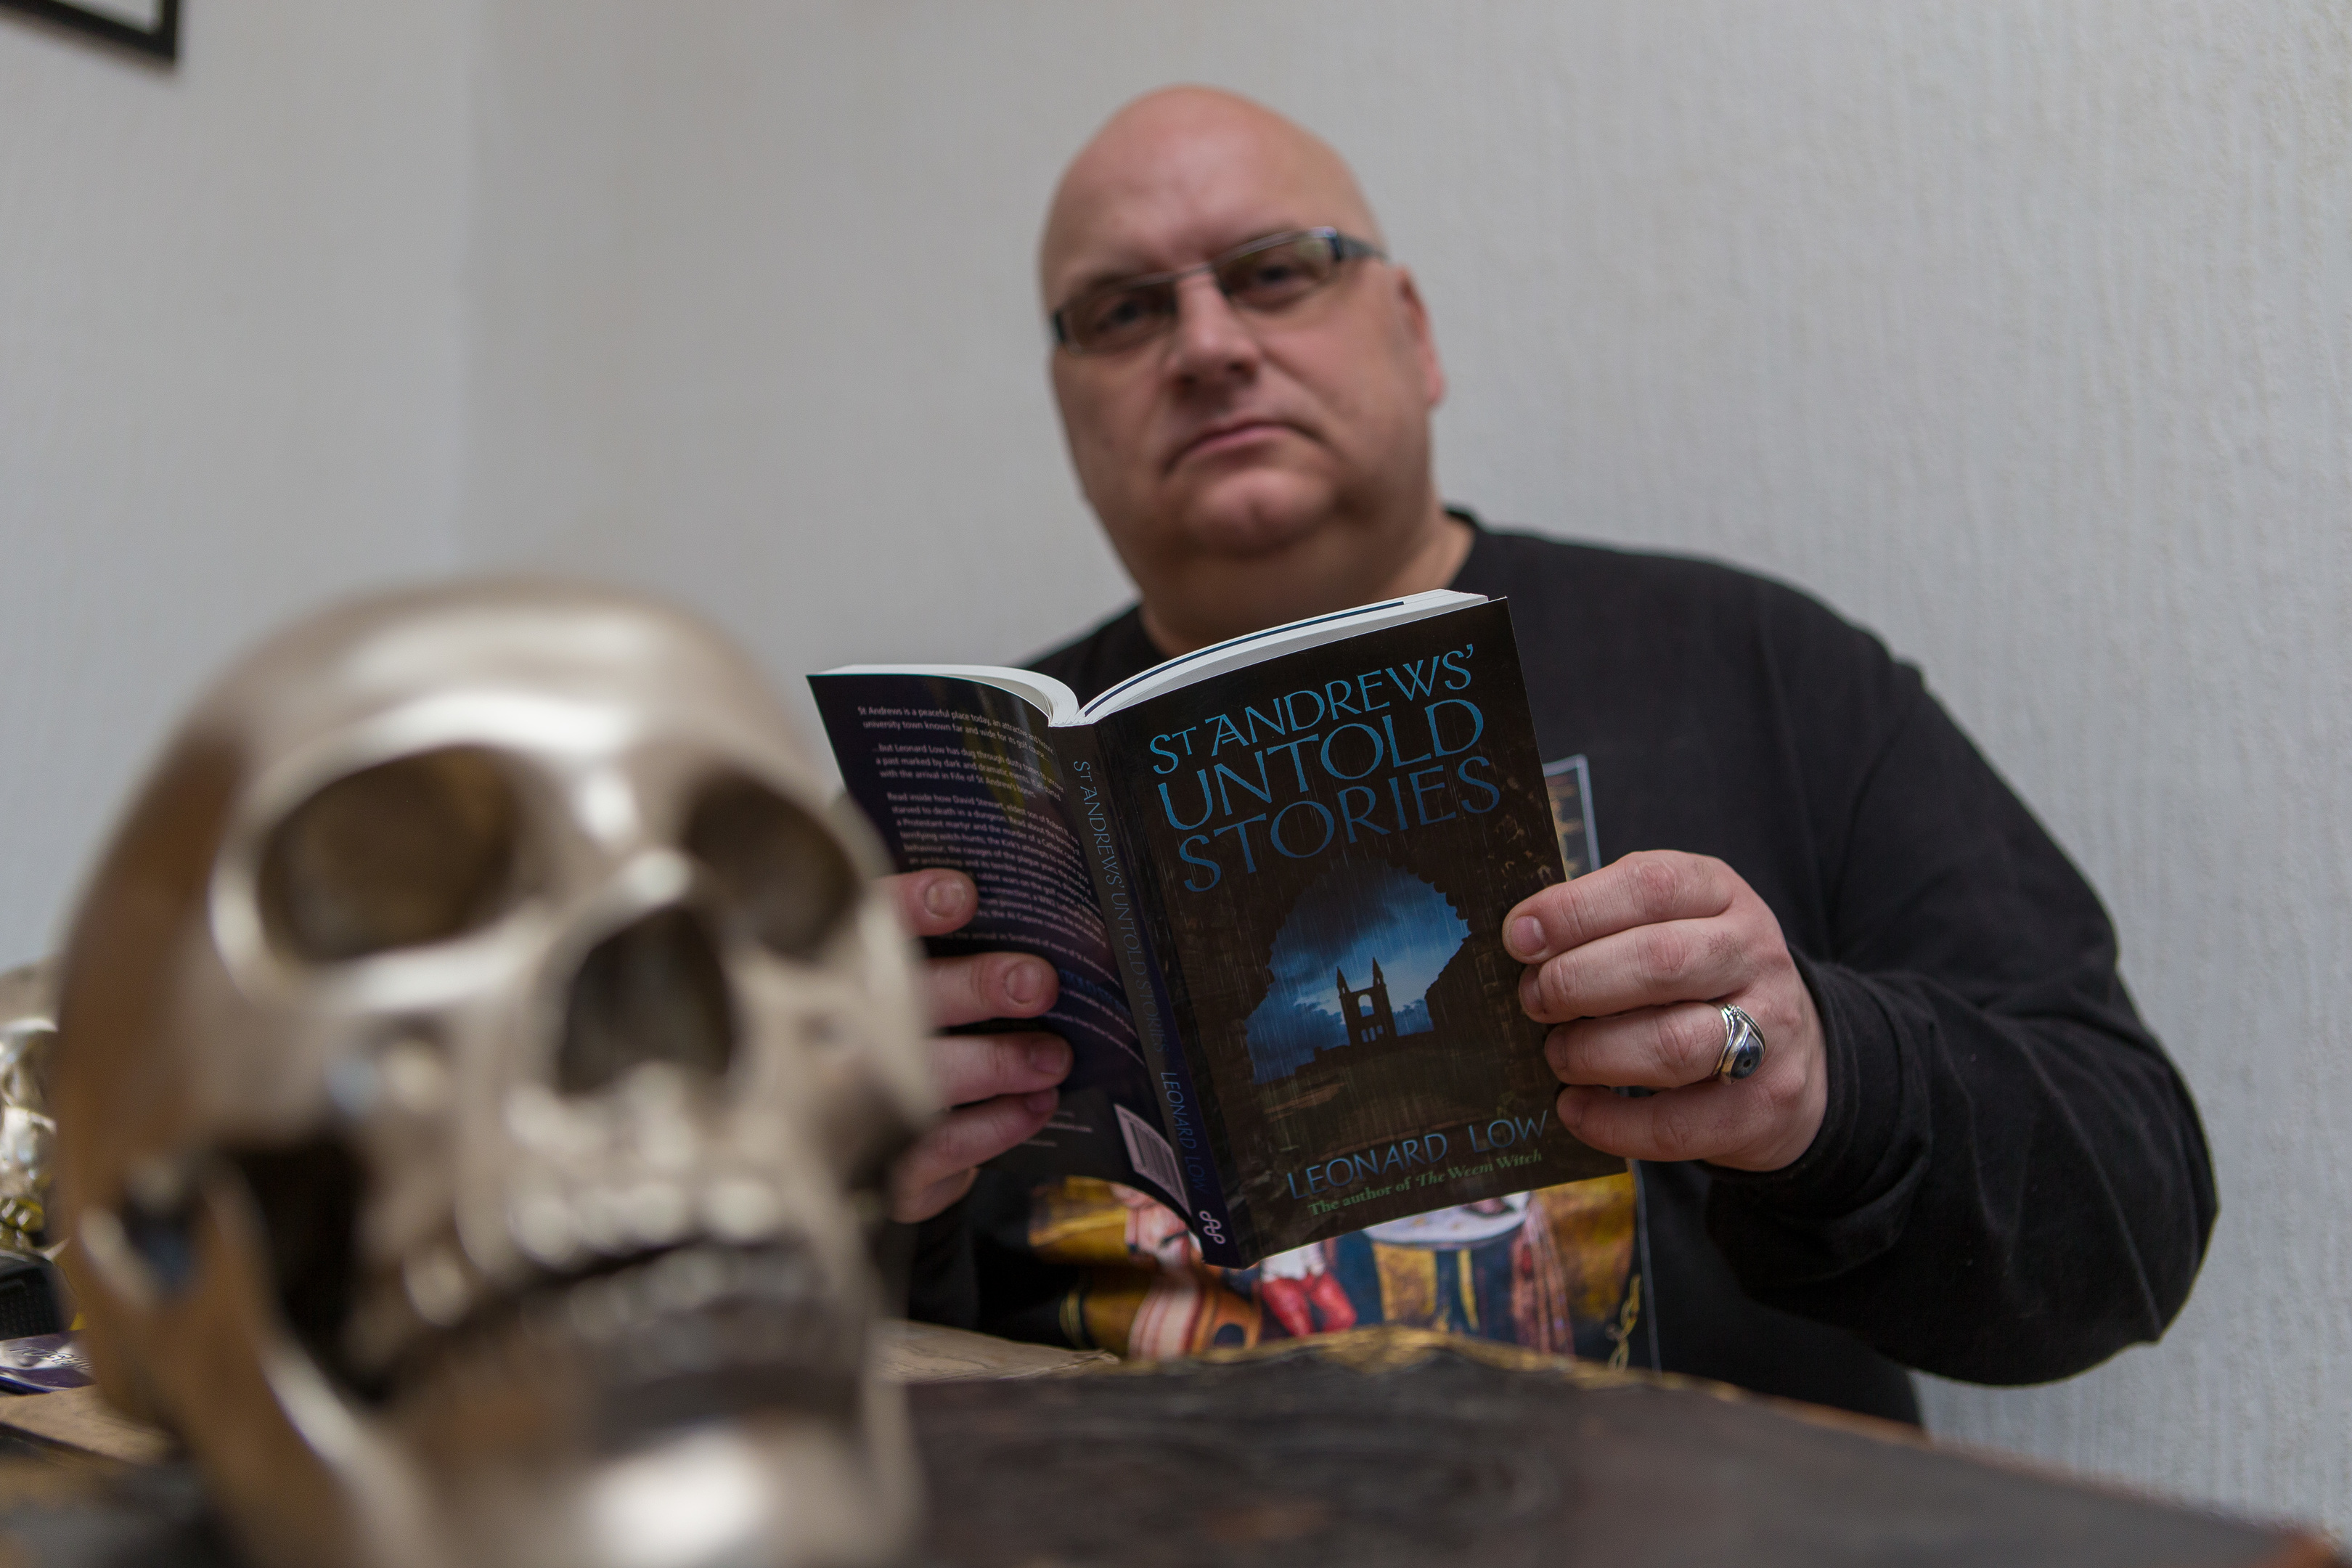 Author Leonard Low with another of his books.